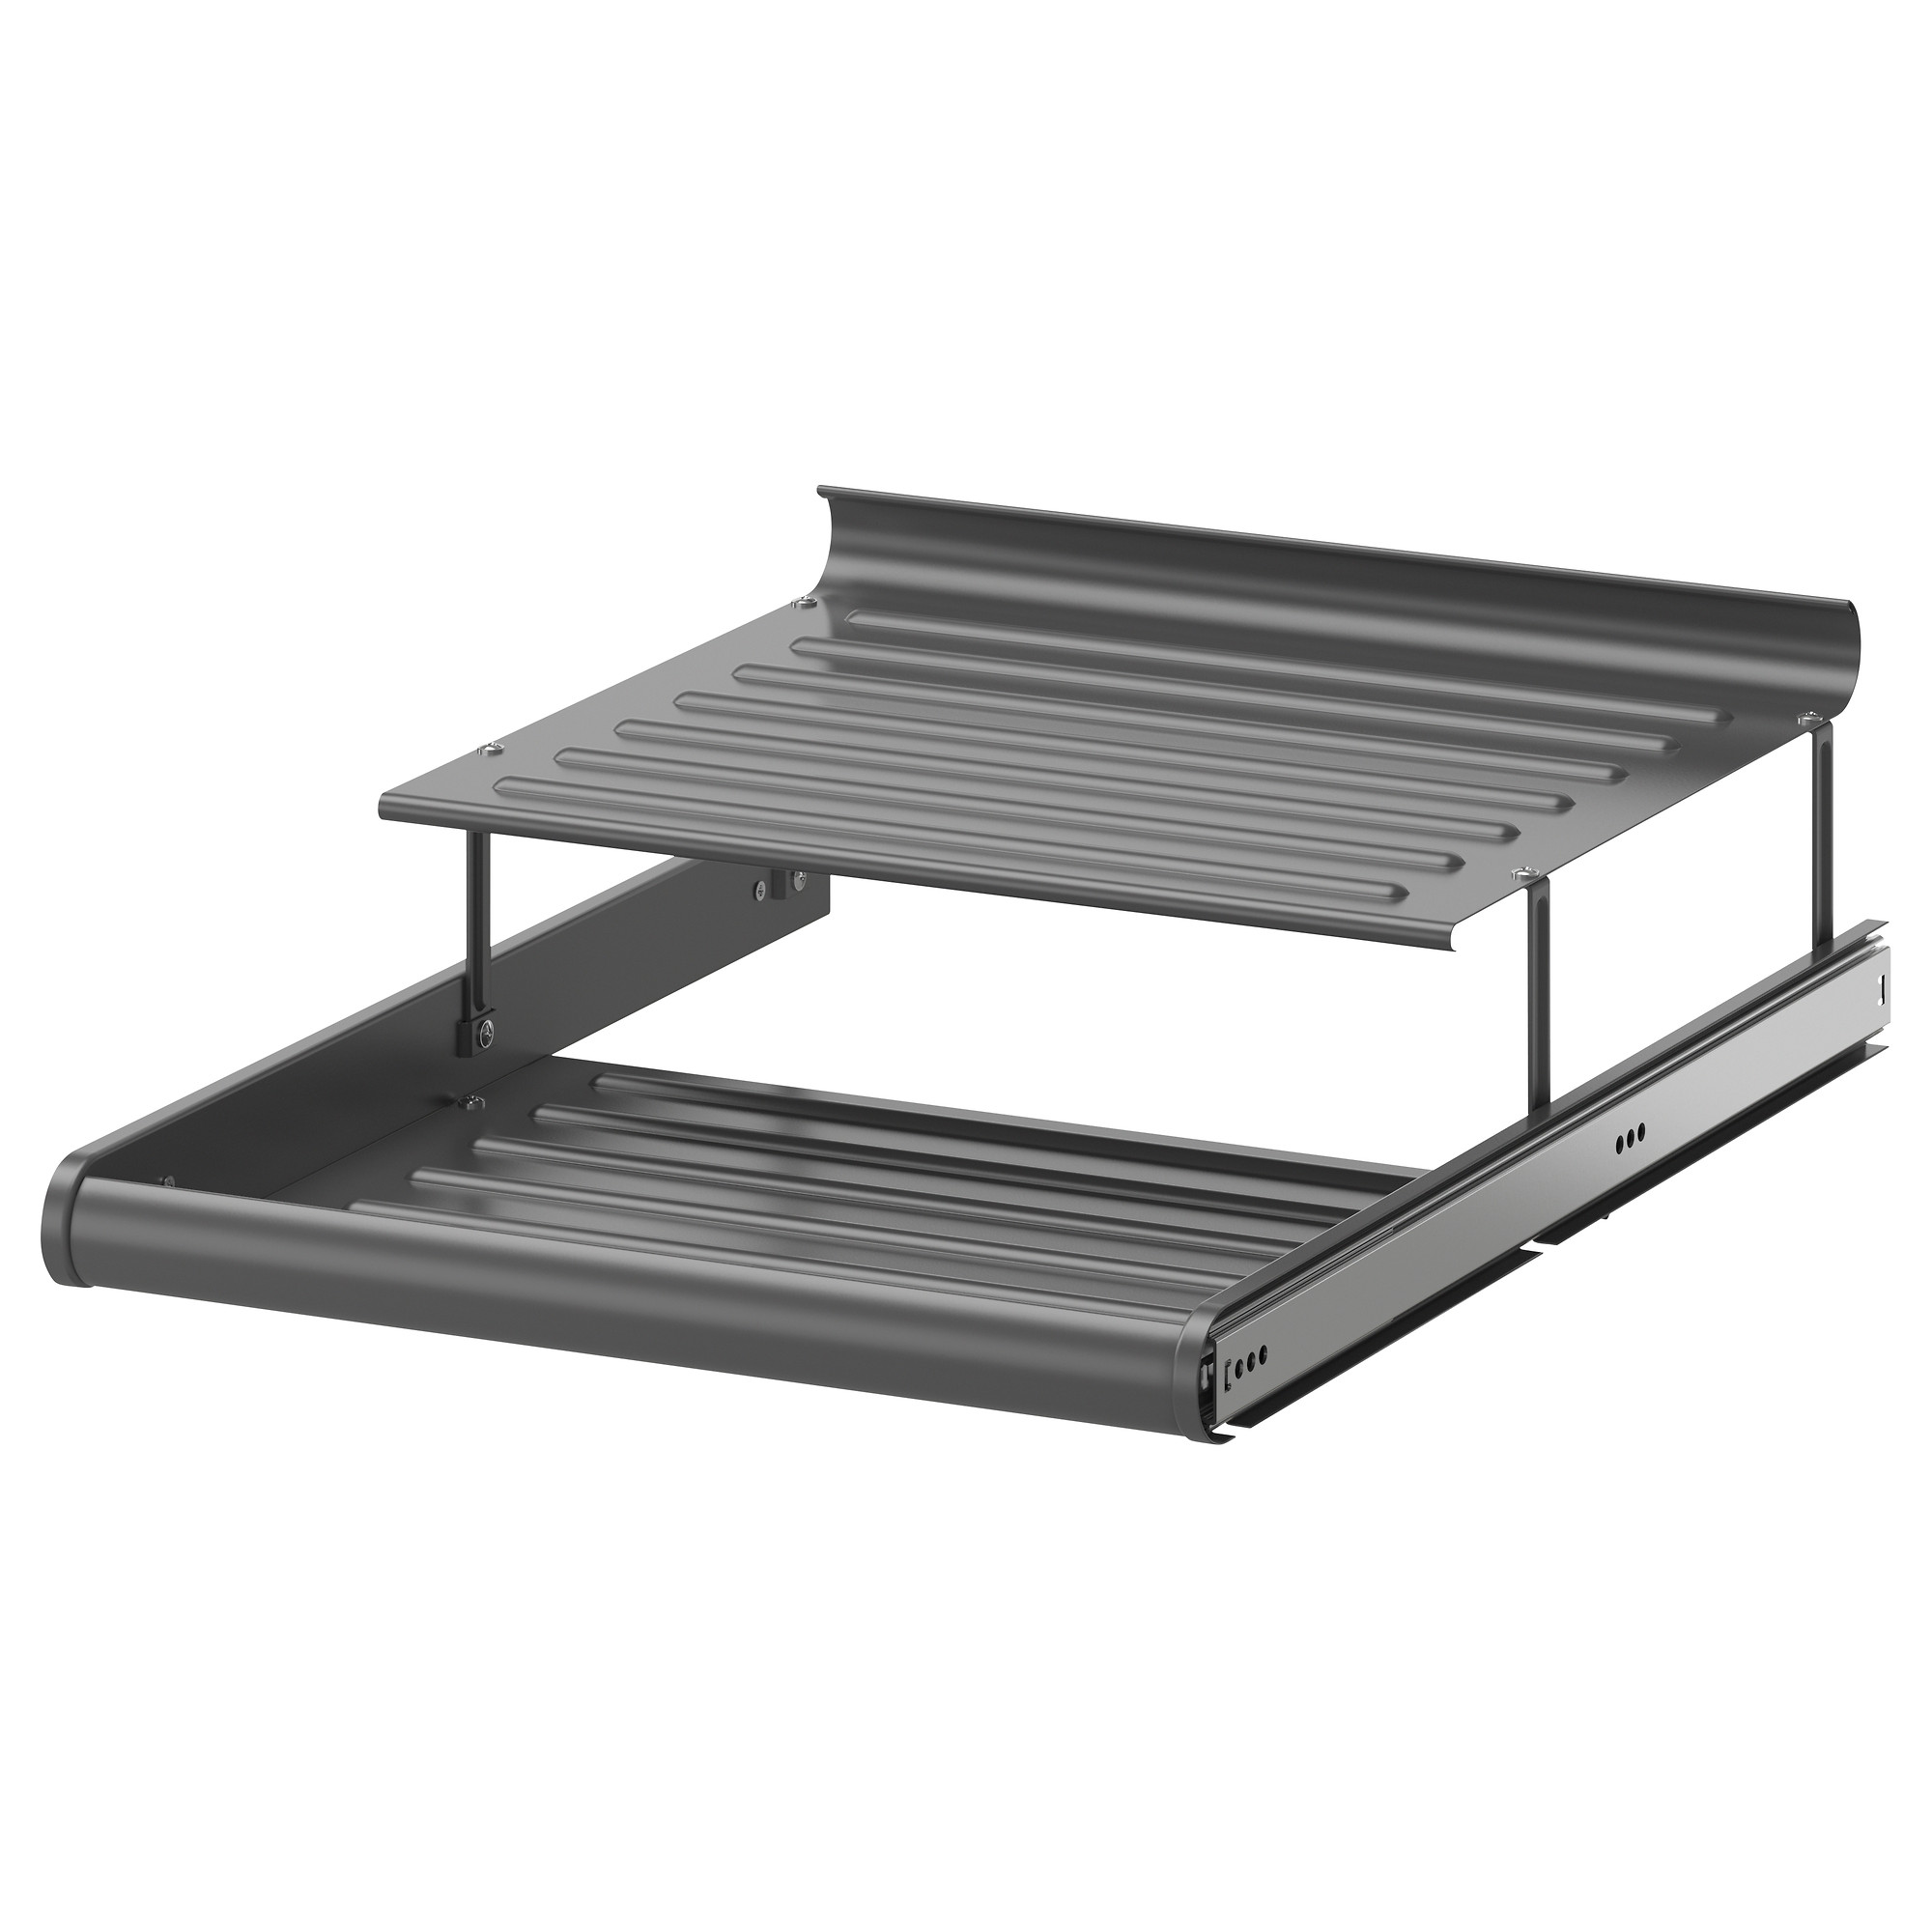 komplement pull out shoe shelf dark gray 19 5 8x22 7 8 ikea